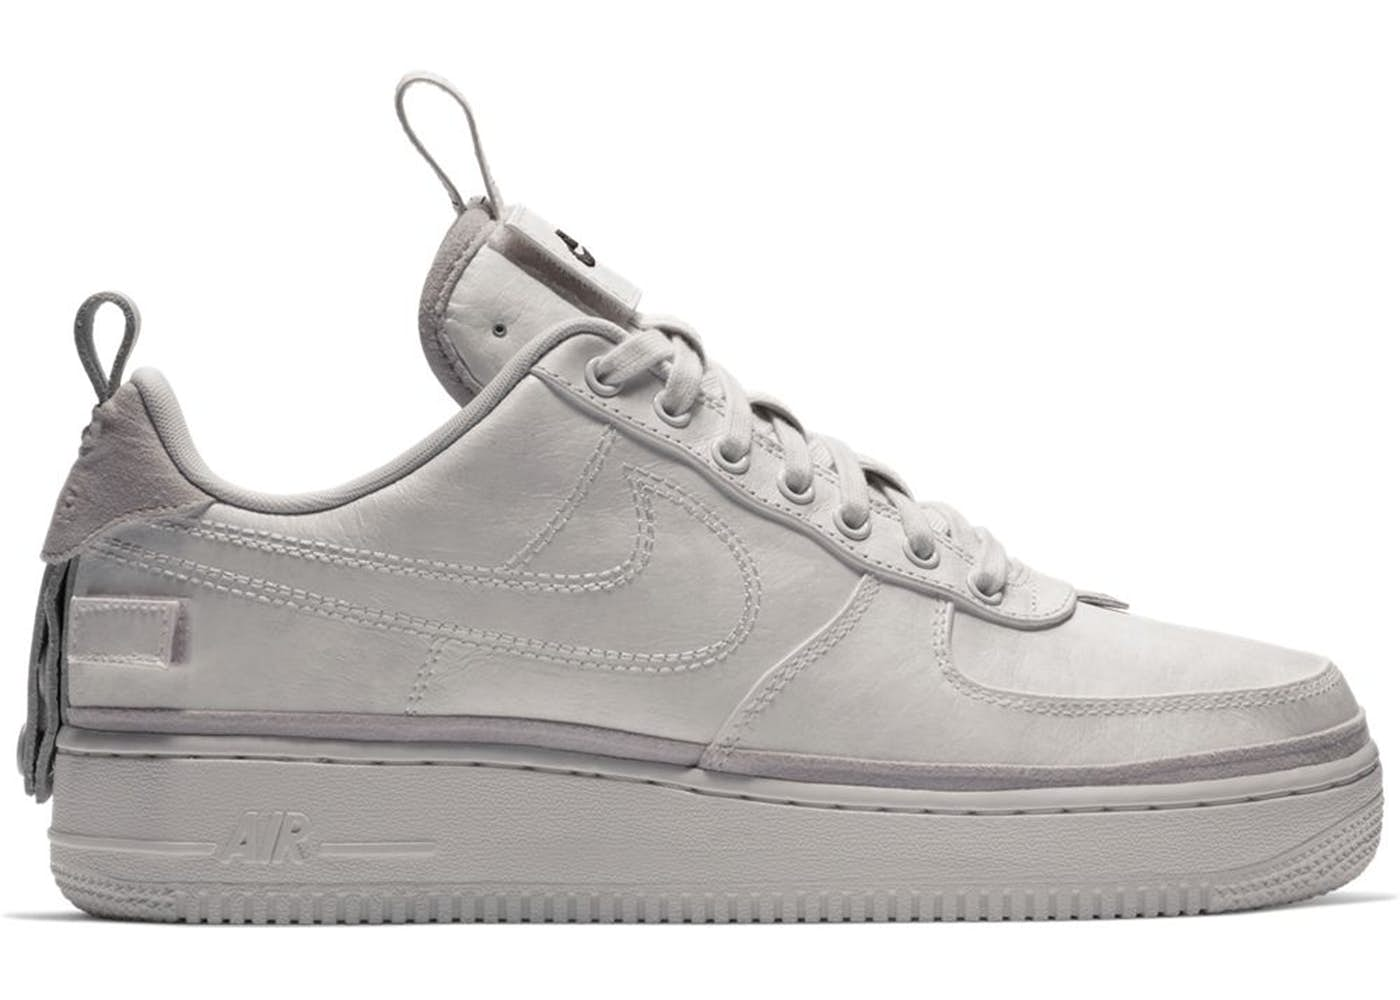 BUY Nike Air Force 1 Low 90 10 All-Star (2018) For Sale – authentechs.com 38bcc72a0